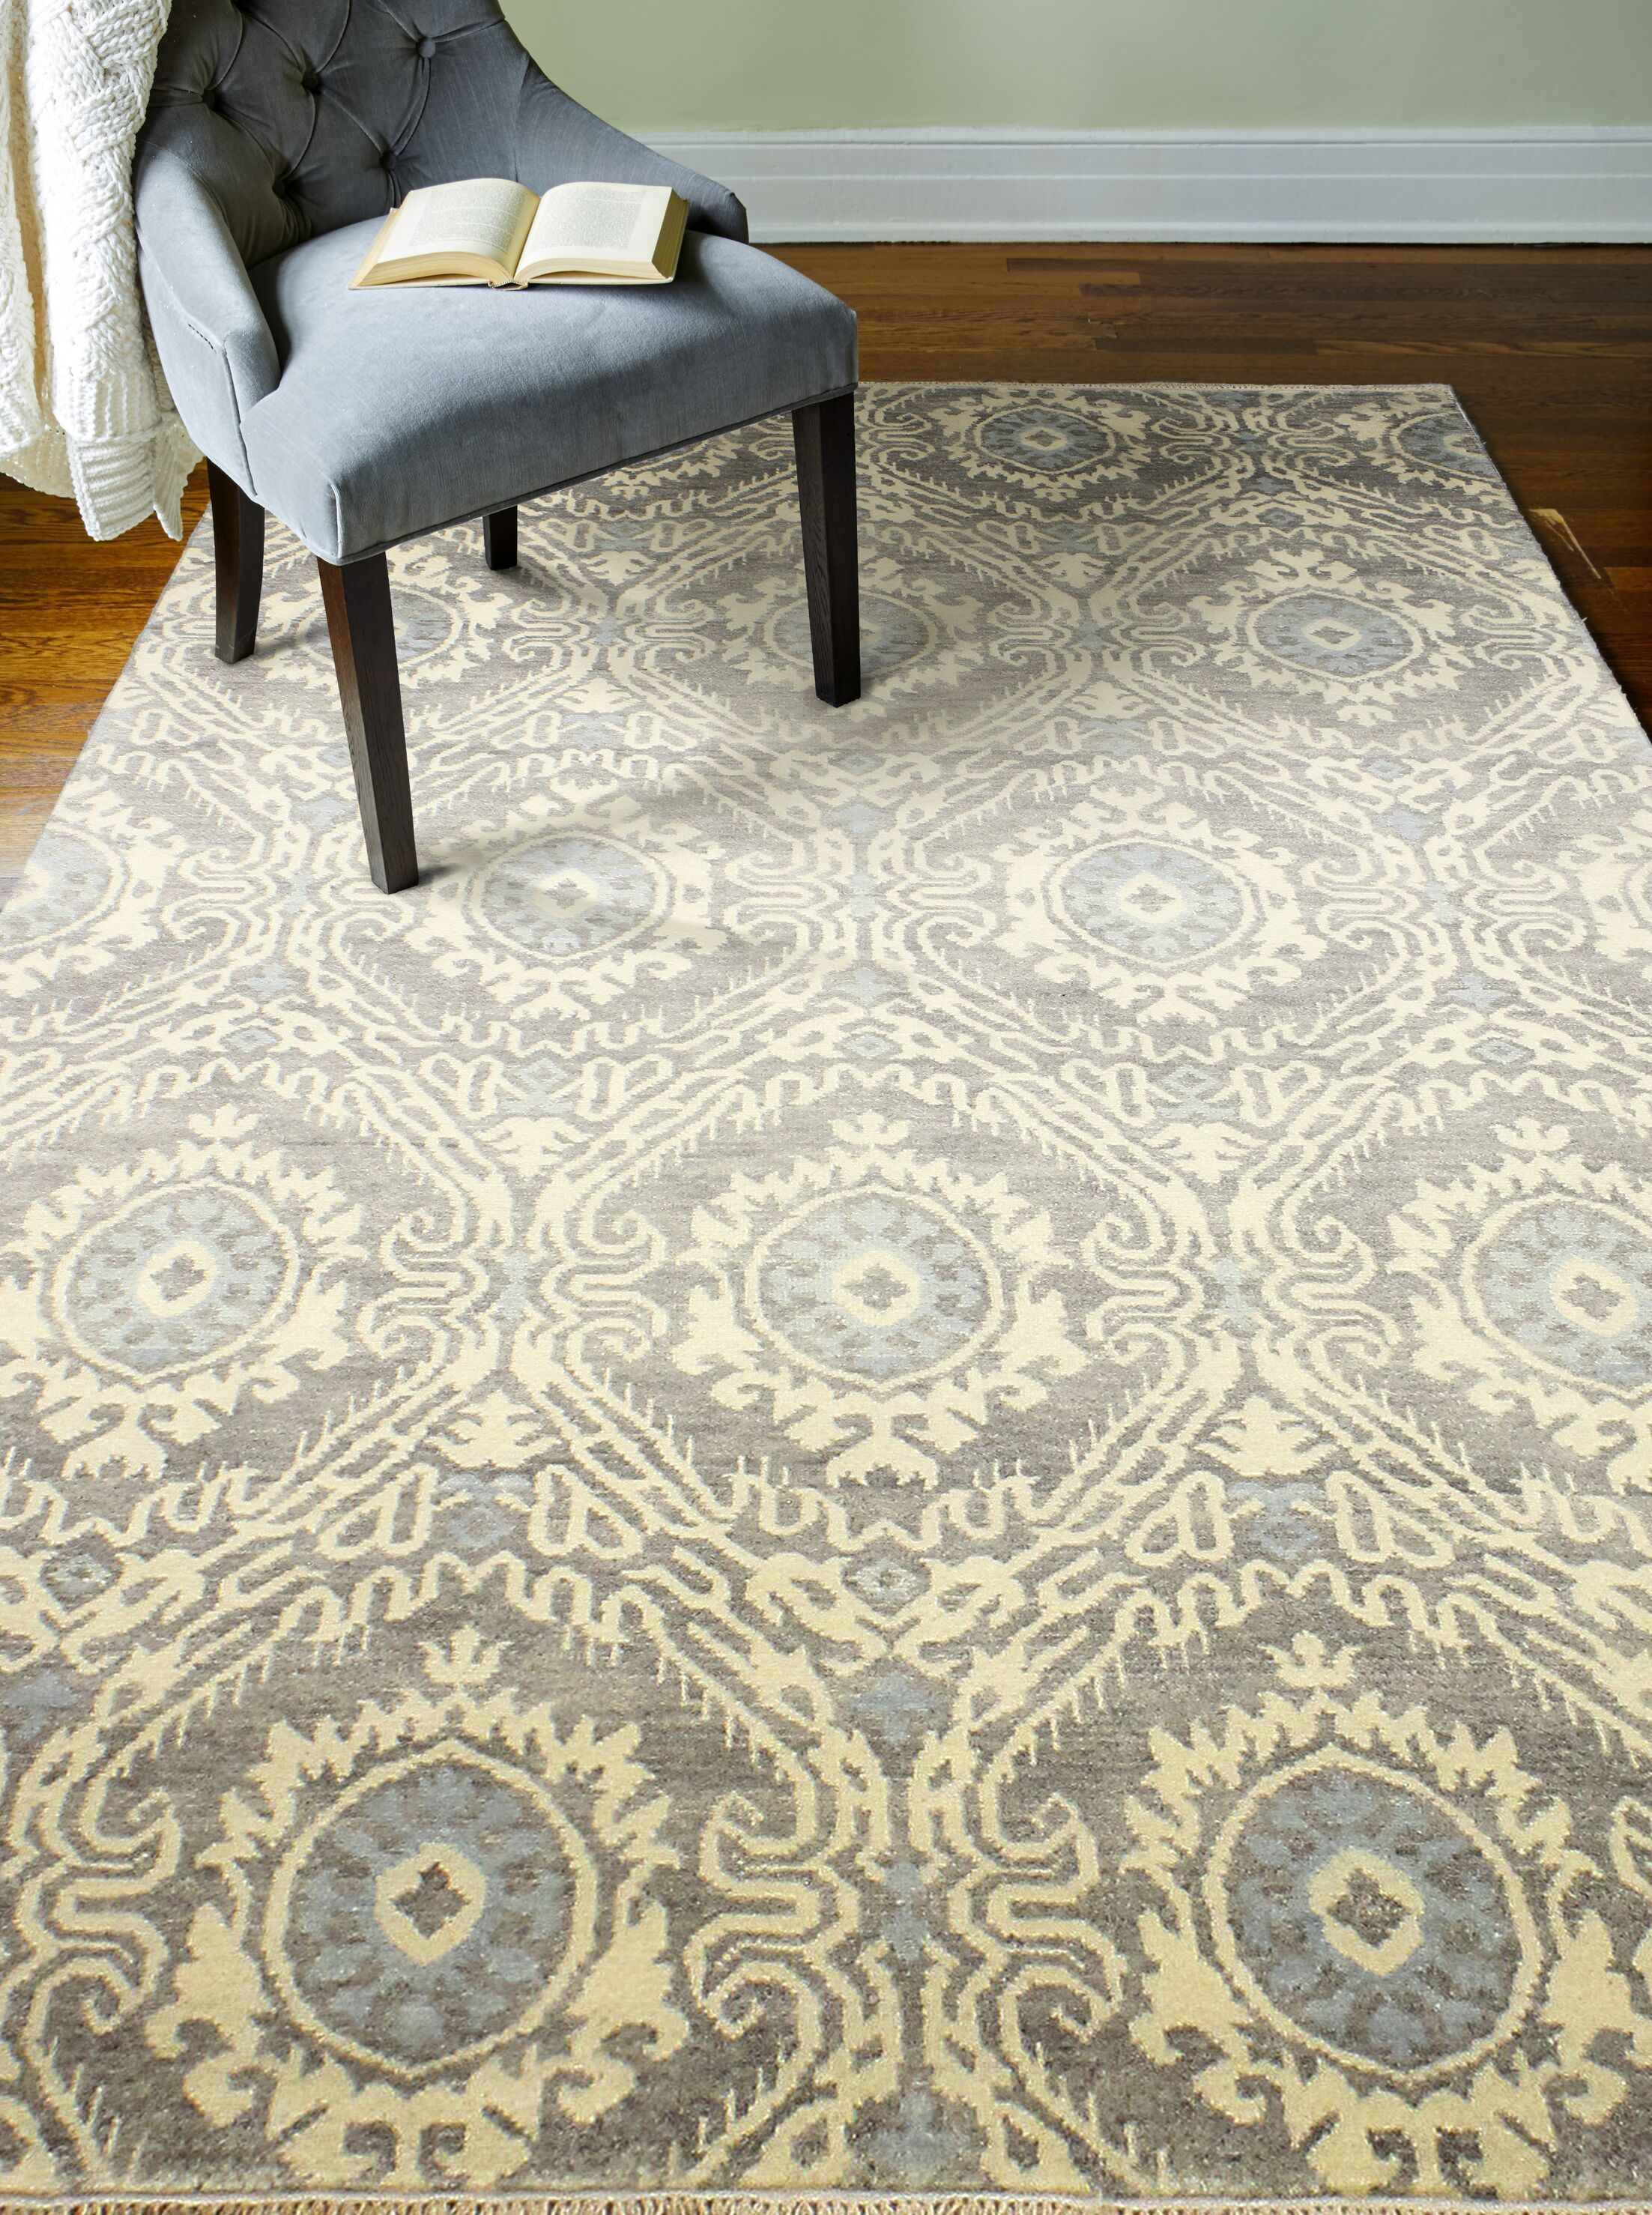 Arsenal Hand-Knotted Wool Gray Area Rug Rug Size: Rectangle 5'9